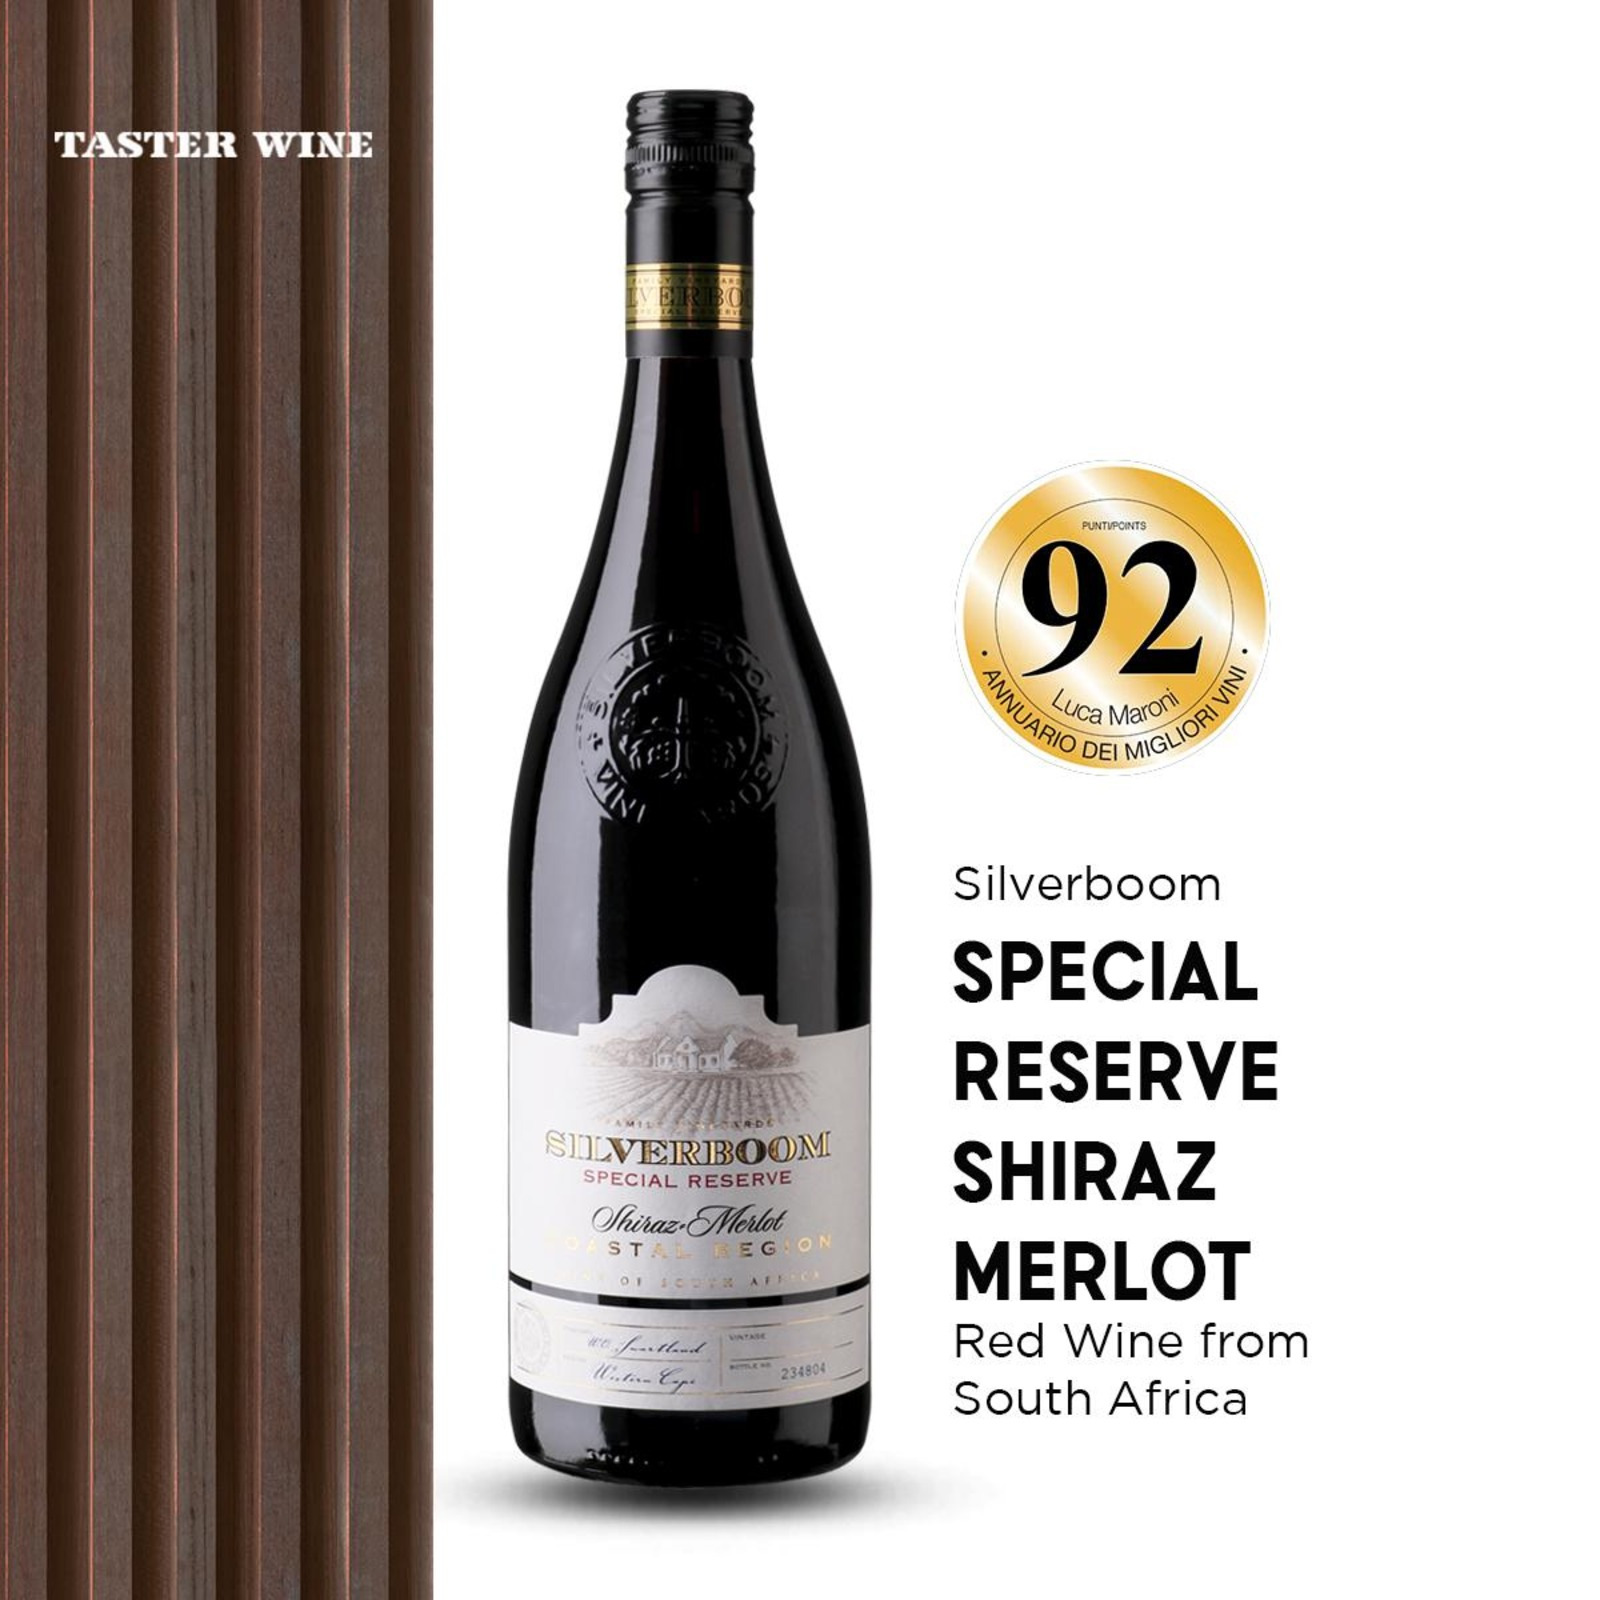 Silverboom Shiraz/Merlot - Red Wine